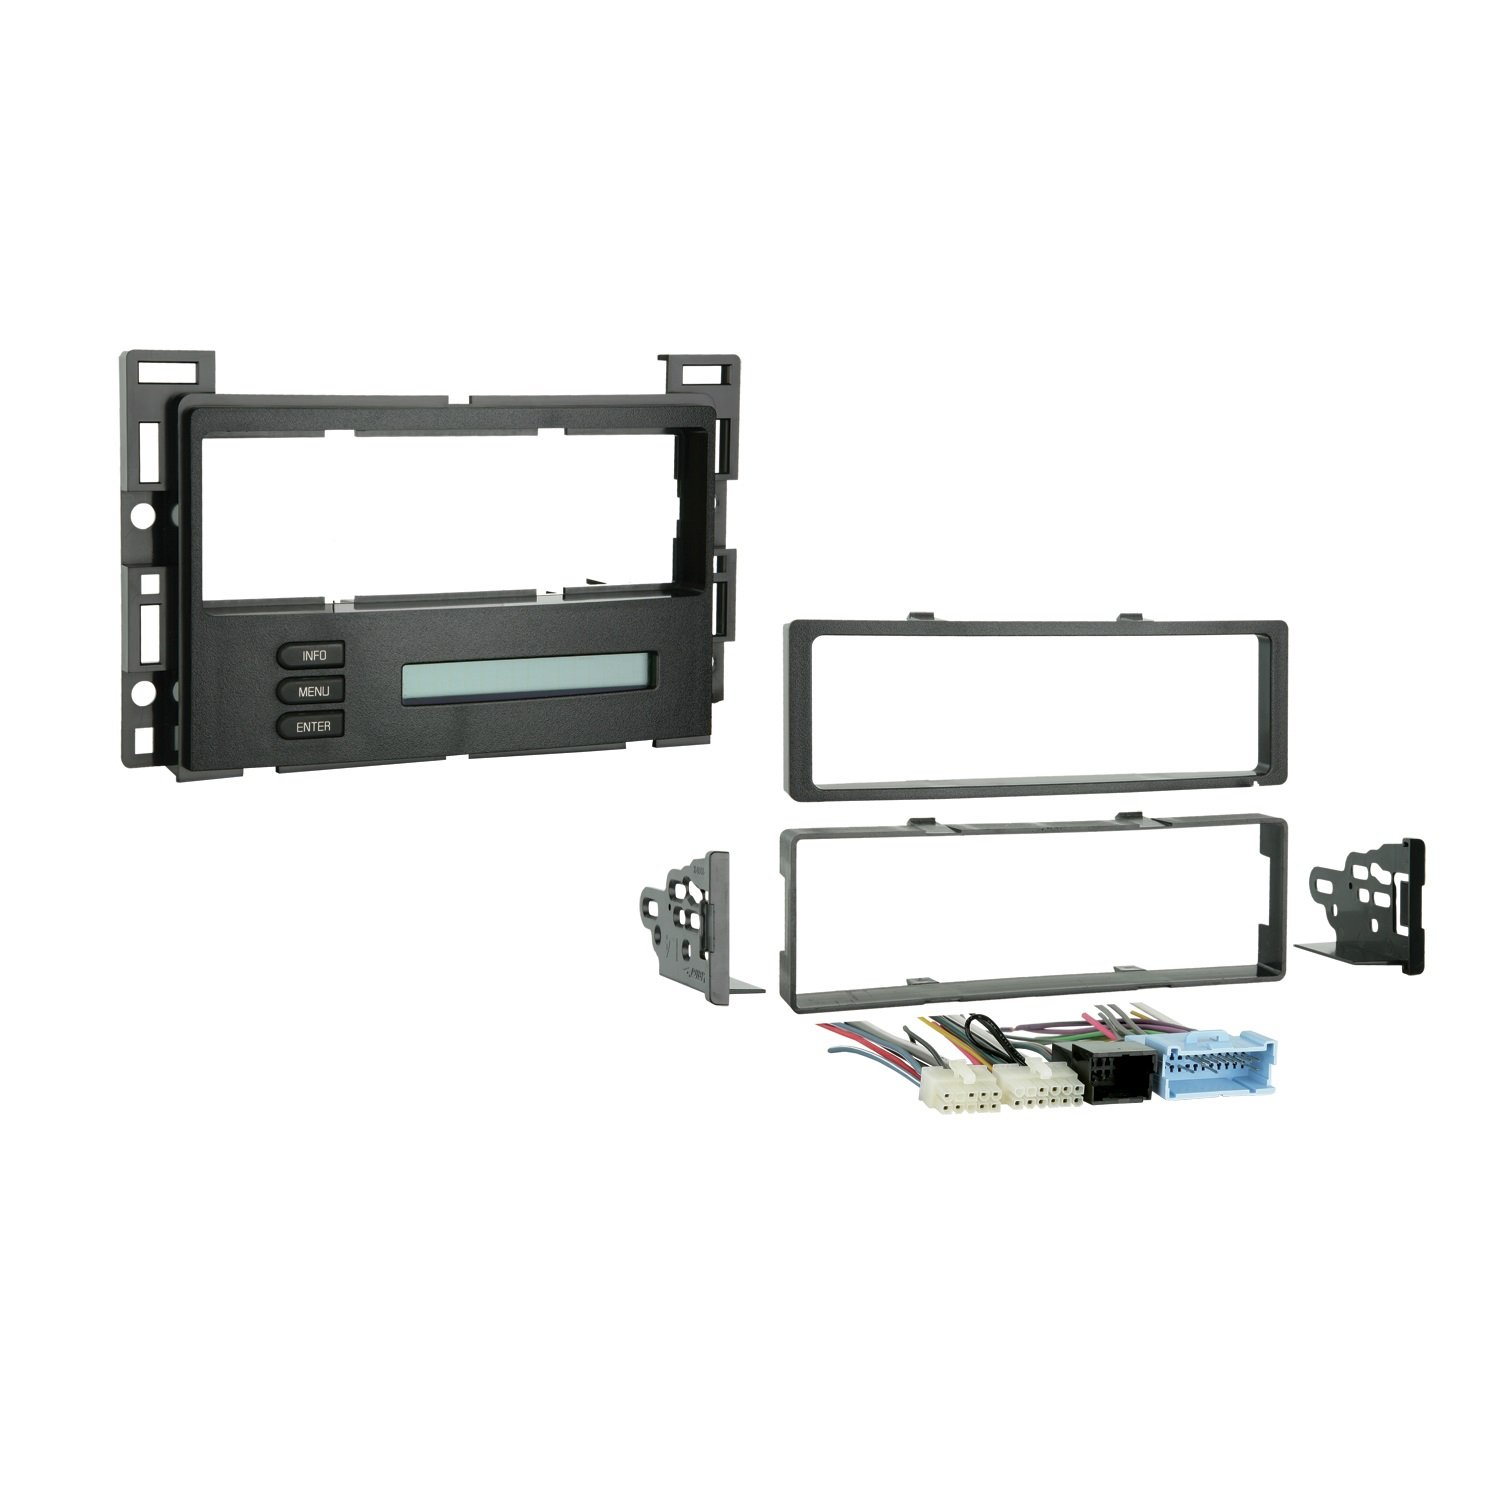 Metra 99-3303 Install kit for GM Vehicles Using The LAN System Integrate Vehicle Diagnostics -Black by Metra